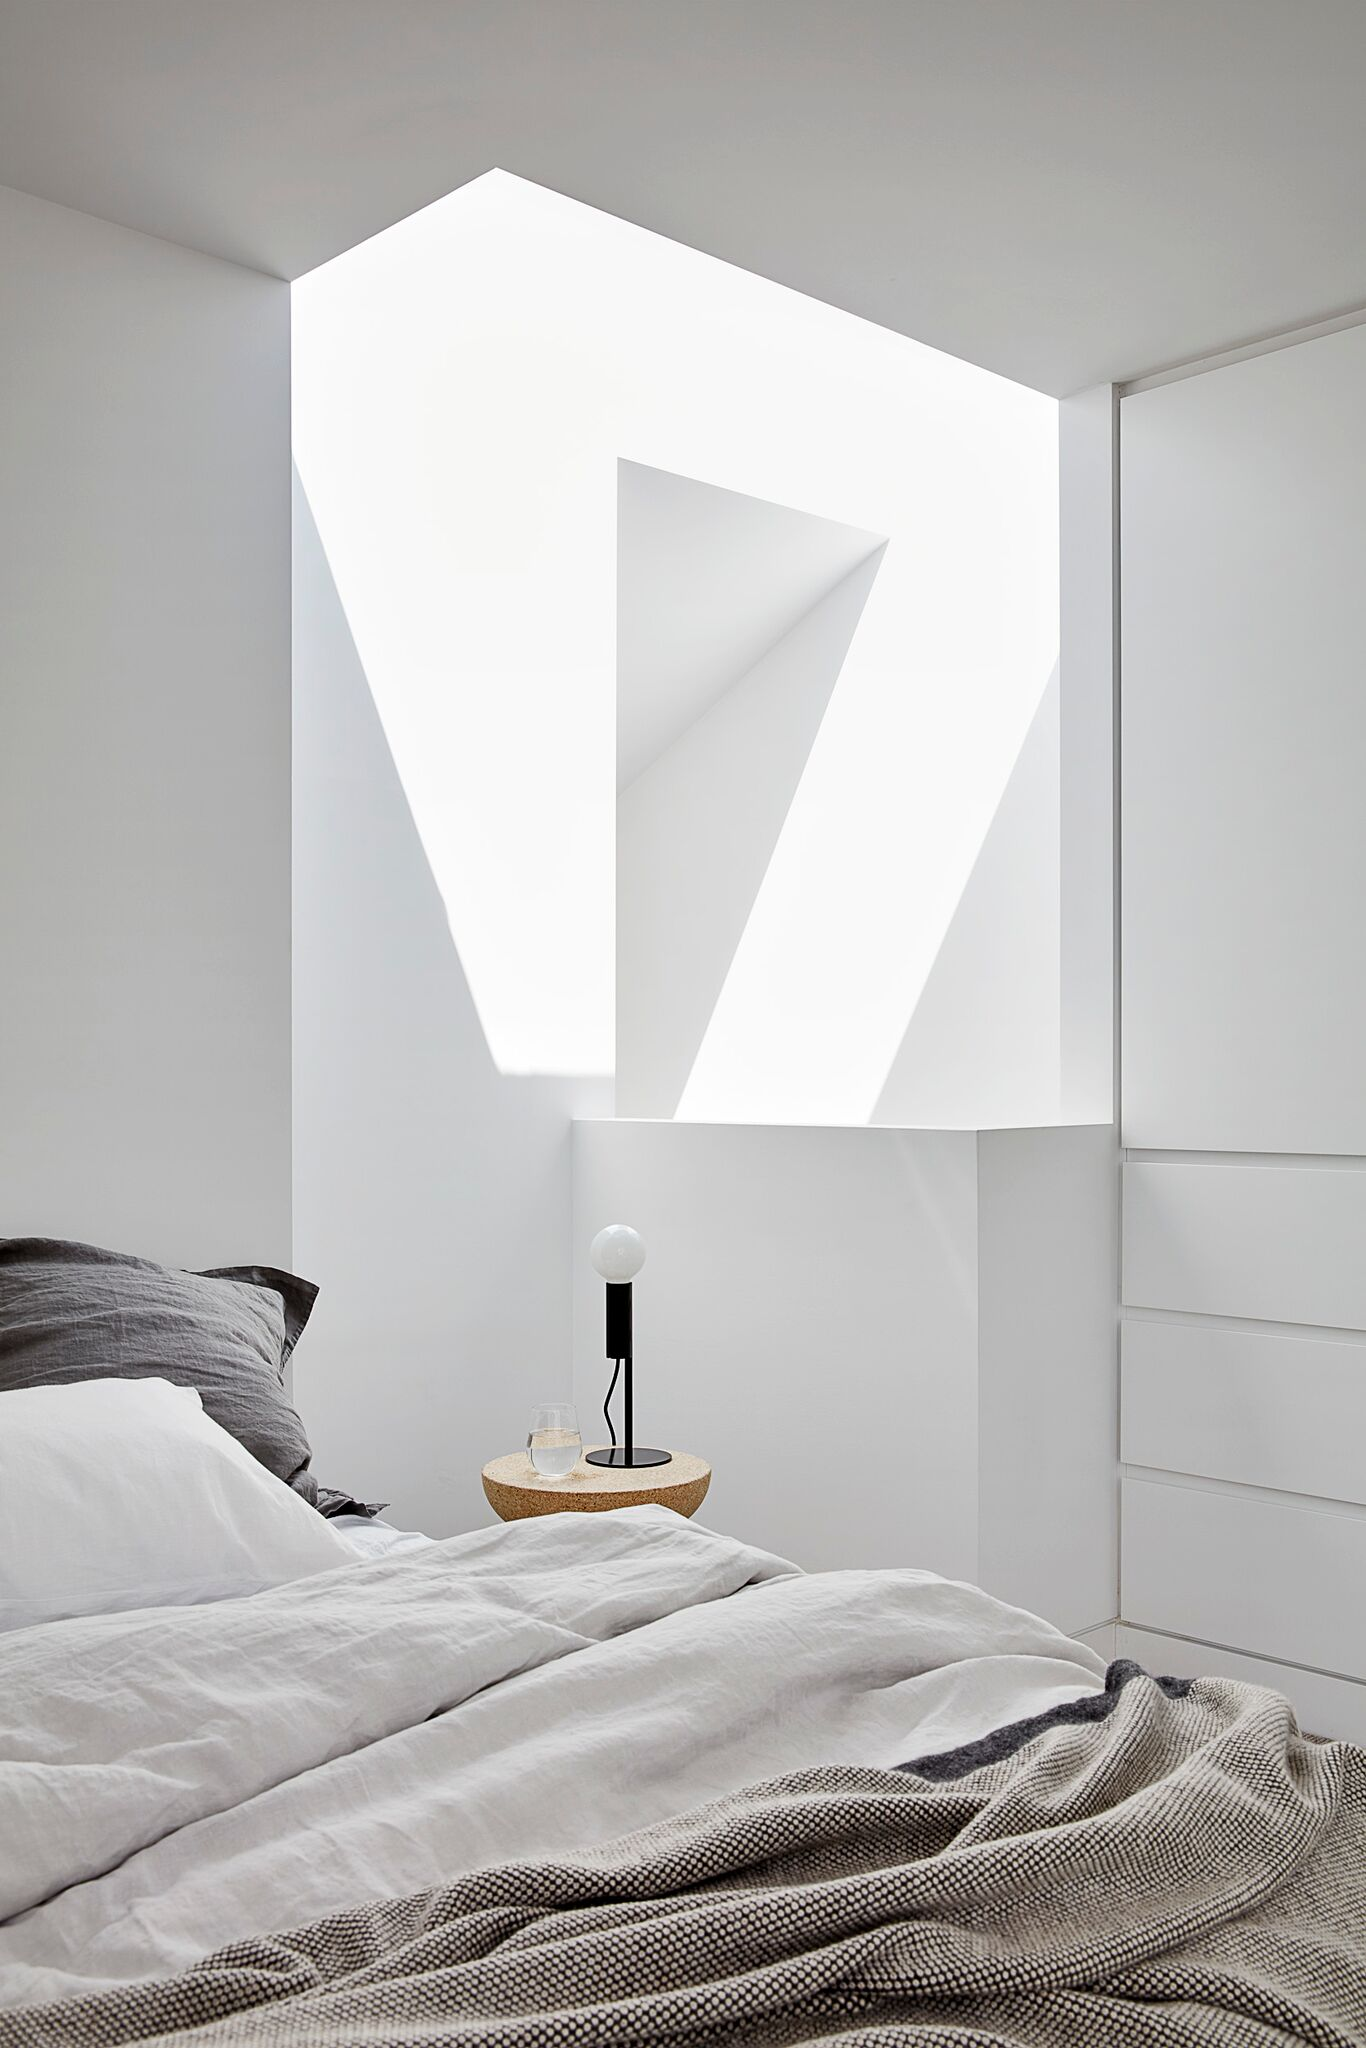 Gallery Of Oban Street By Mittelman Amsellem Architects Local Australian Design & Interiors South Yarra, Melbourne Image 12